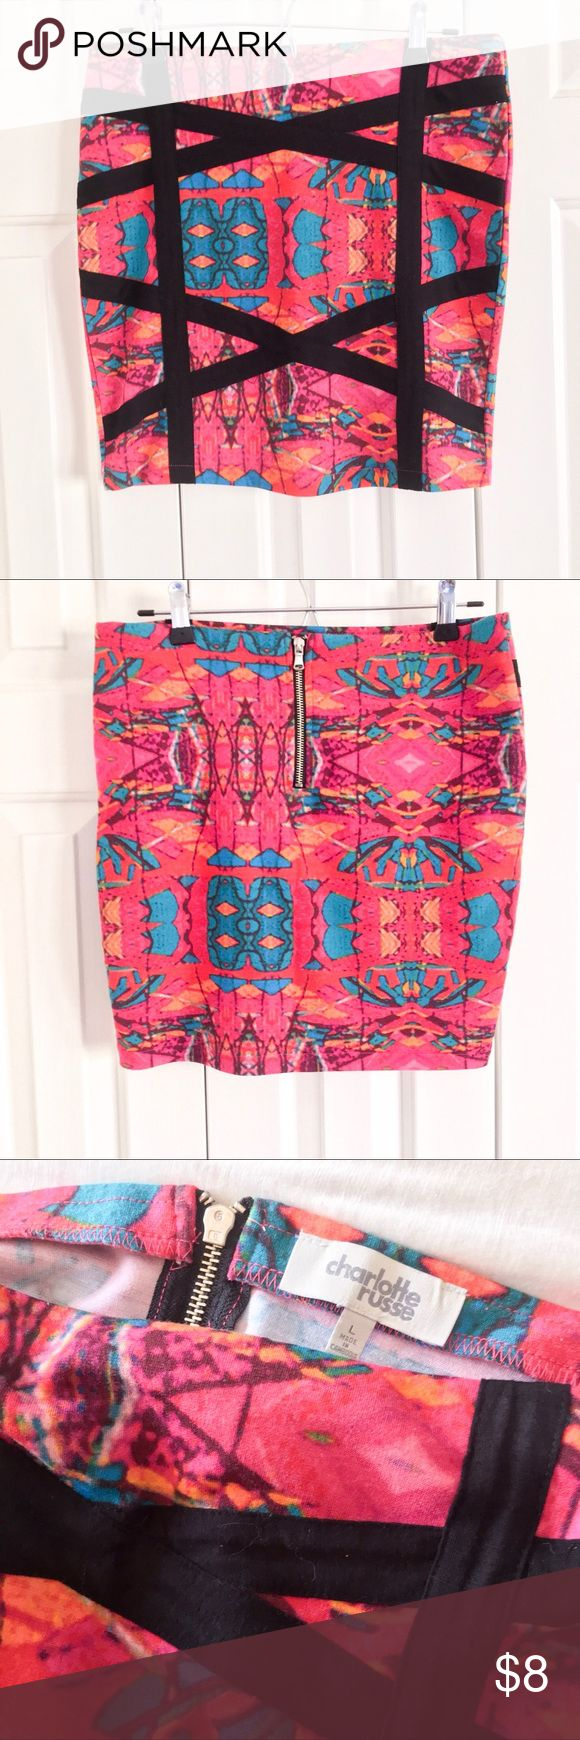 ✨B2G1Free✨ Kaleidoscope Body-Con Mini Skirt Bright and vibrant kalaidascope pattern body-con mini skirt. Thicker fabric with a zipper at the waist. Included in ✨B2G1Free✨ closet-wide sale! Charlotte Russe Skirts Mini